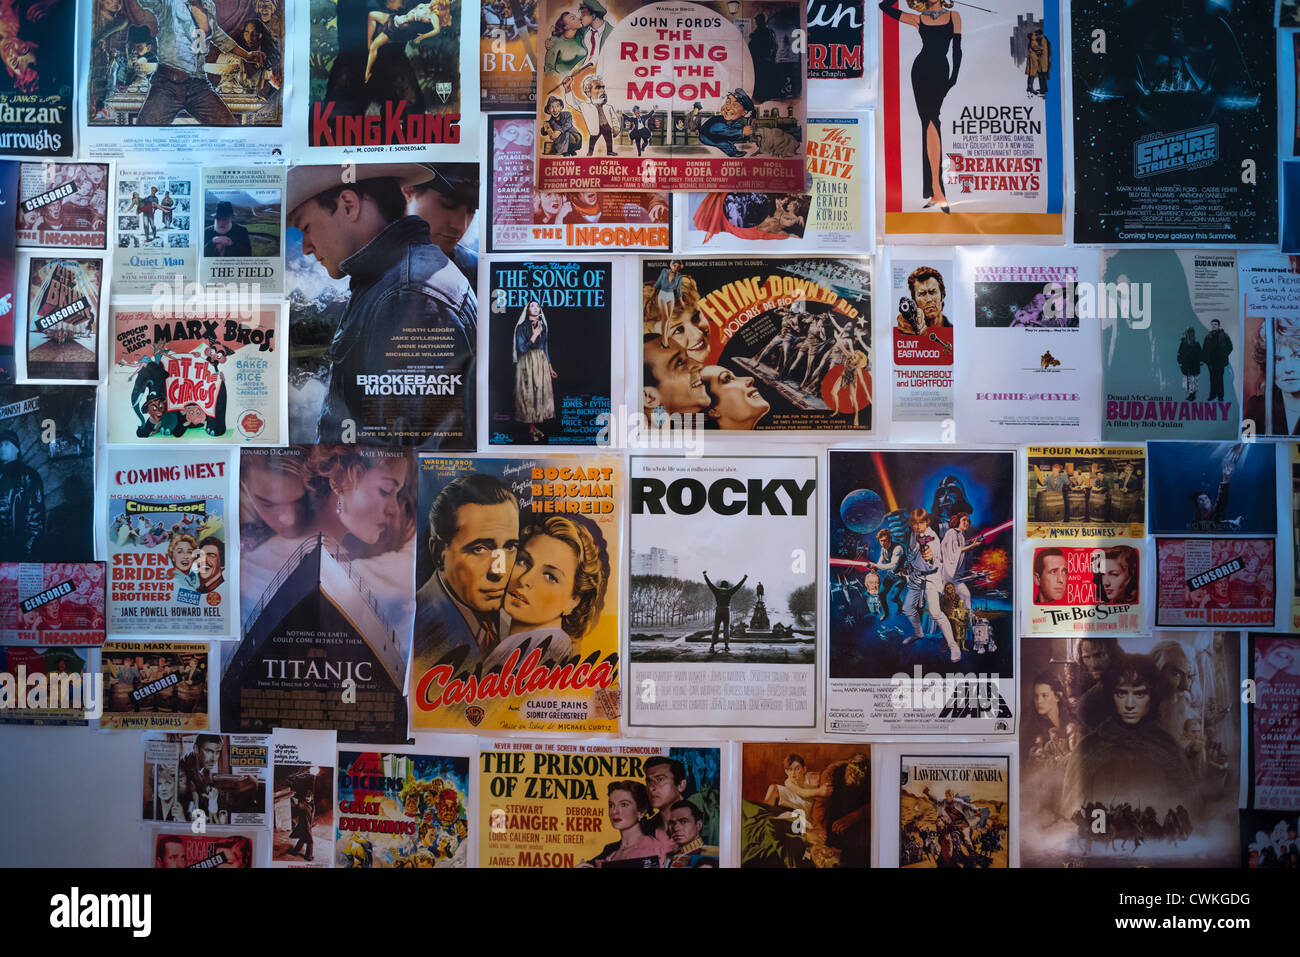 Iconic Hollywood Movie Posters On Wall